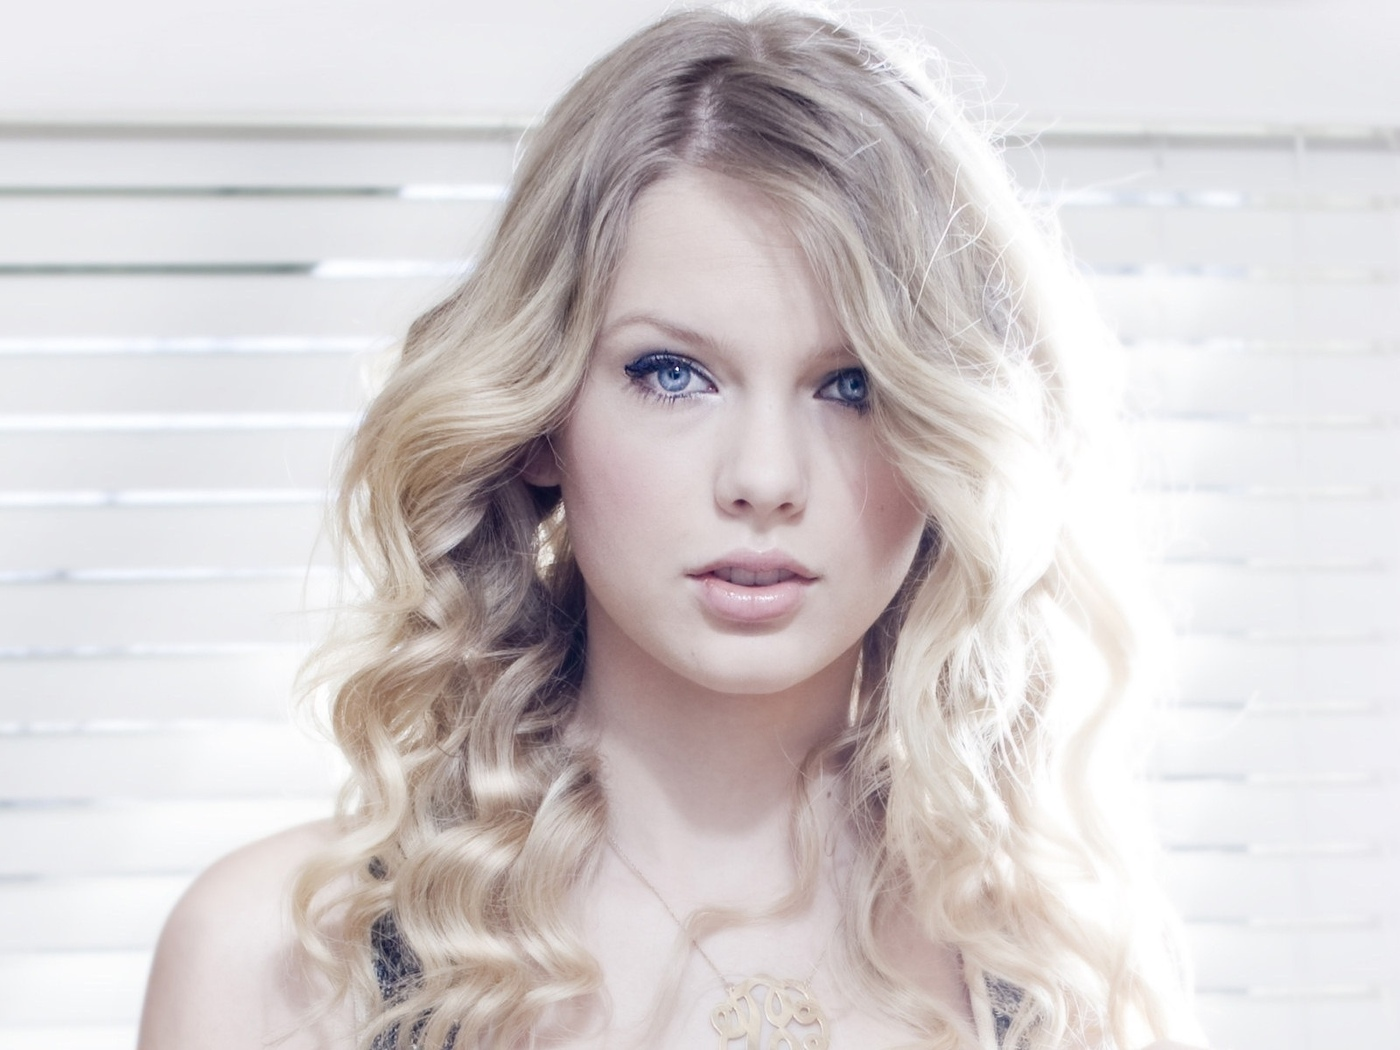 taylor swift, свифт тейлор, taylor alison swift